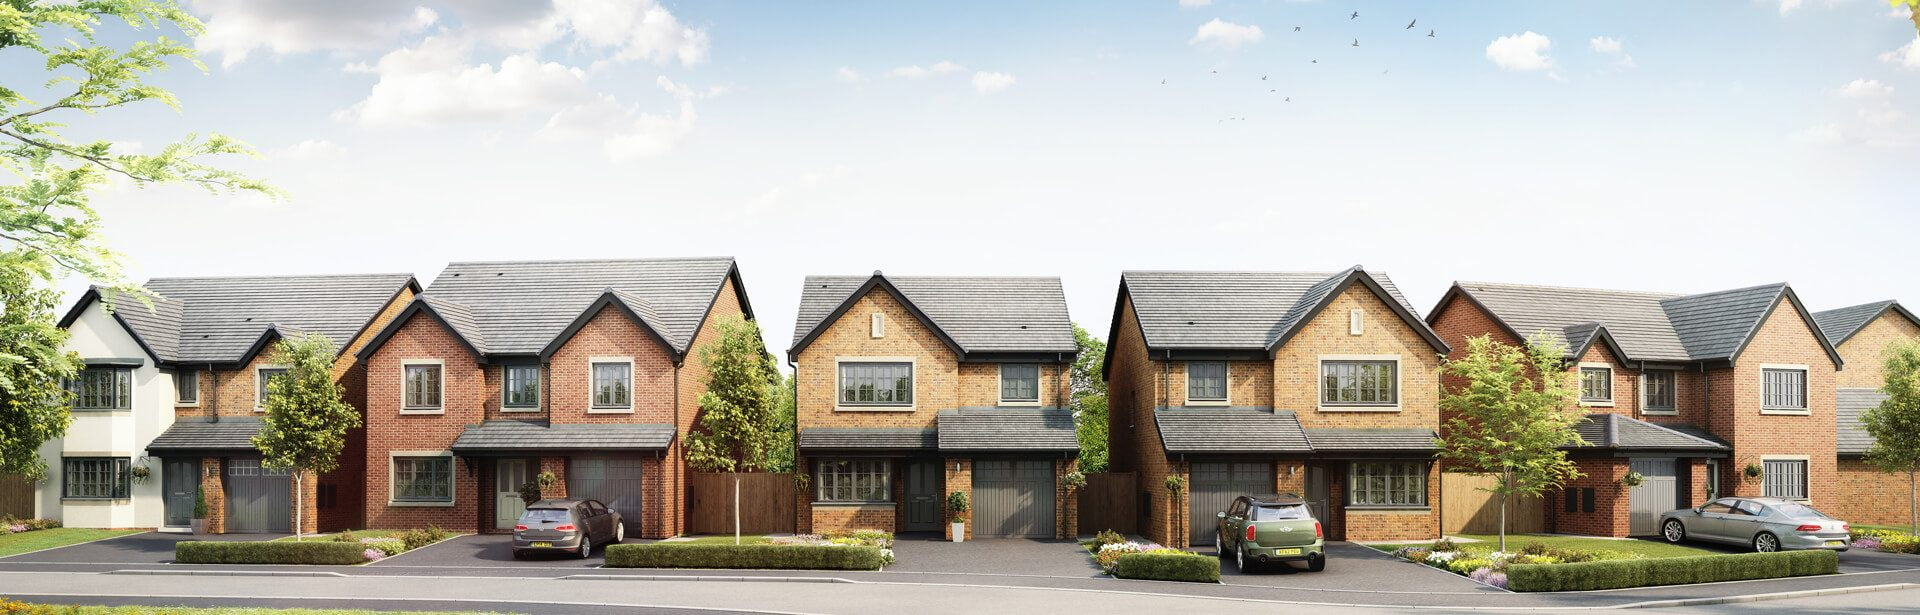 new housing development Congleton